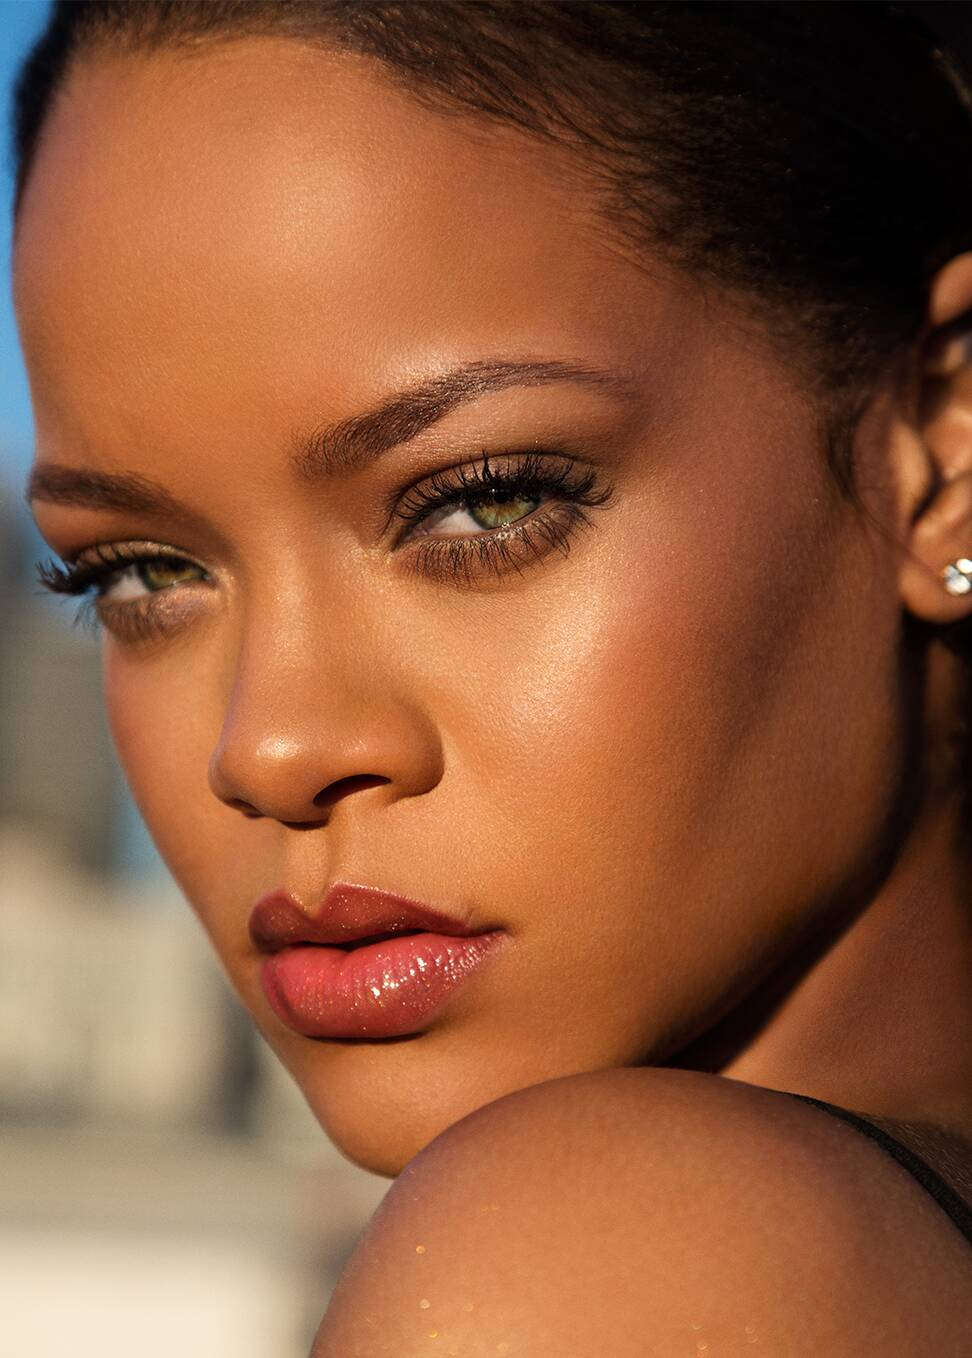 rihanna fenty beauty line skin lips cosmetics identity absolutely need summer things fentybeauty rihannas sephora theplace2 society19 lvmh